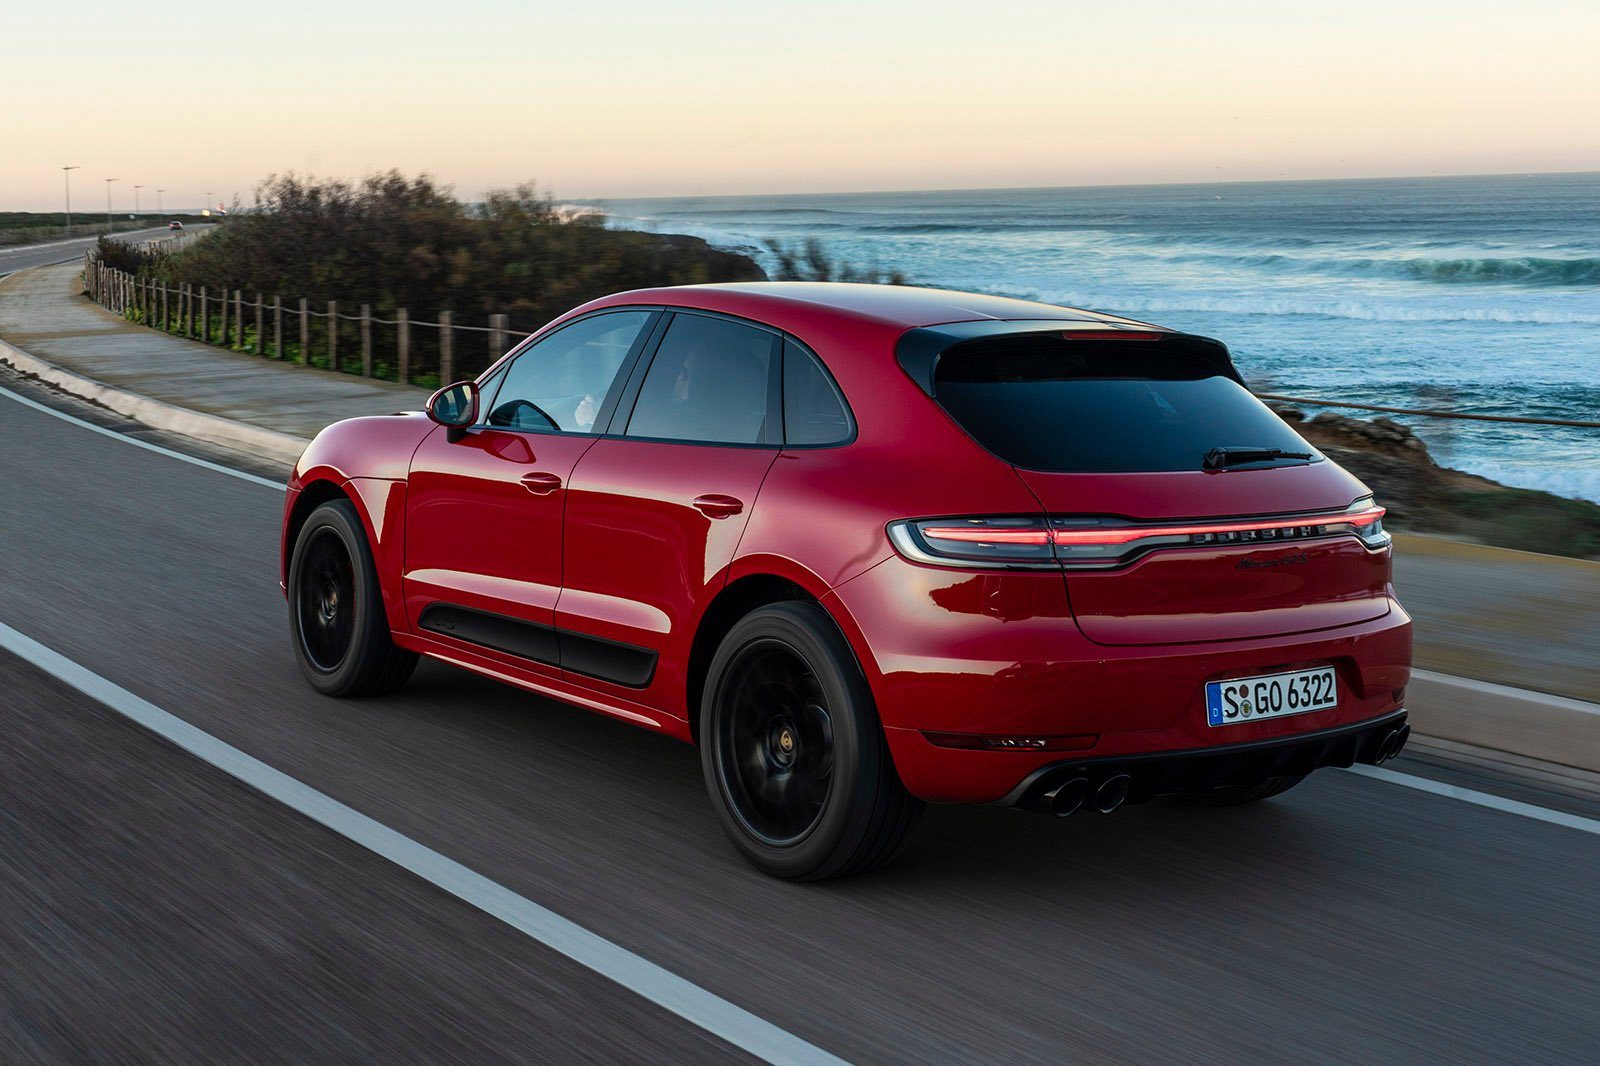 2020 Porsche Macan GTS rear driving